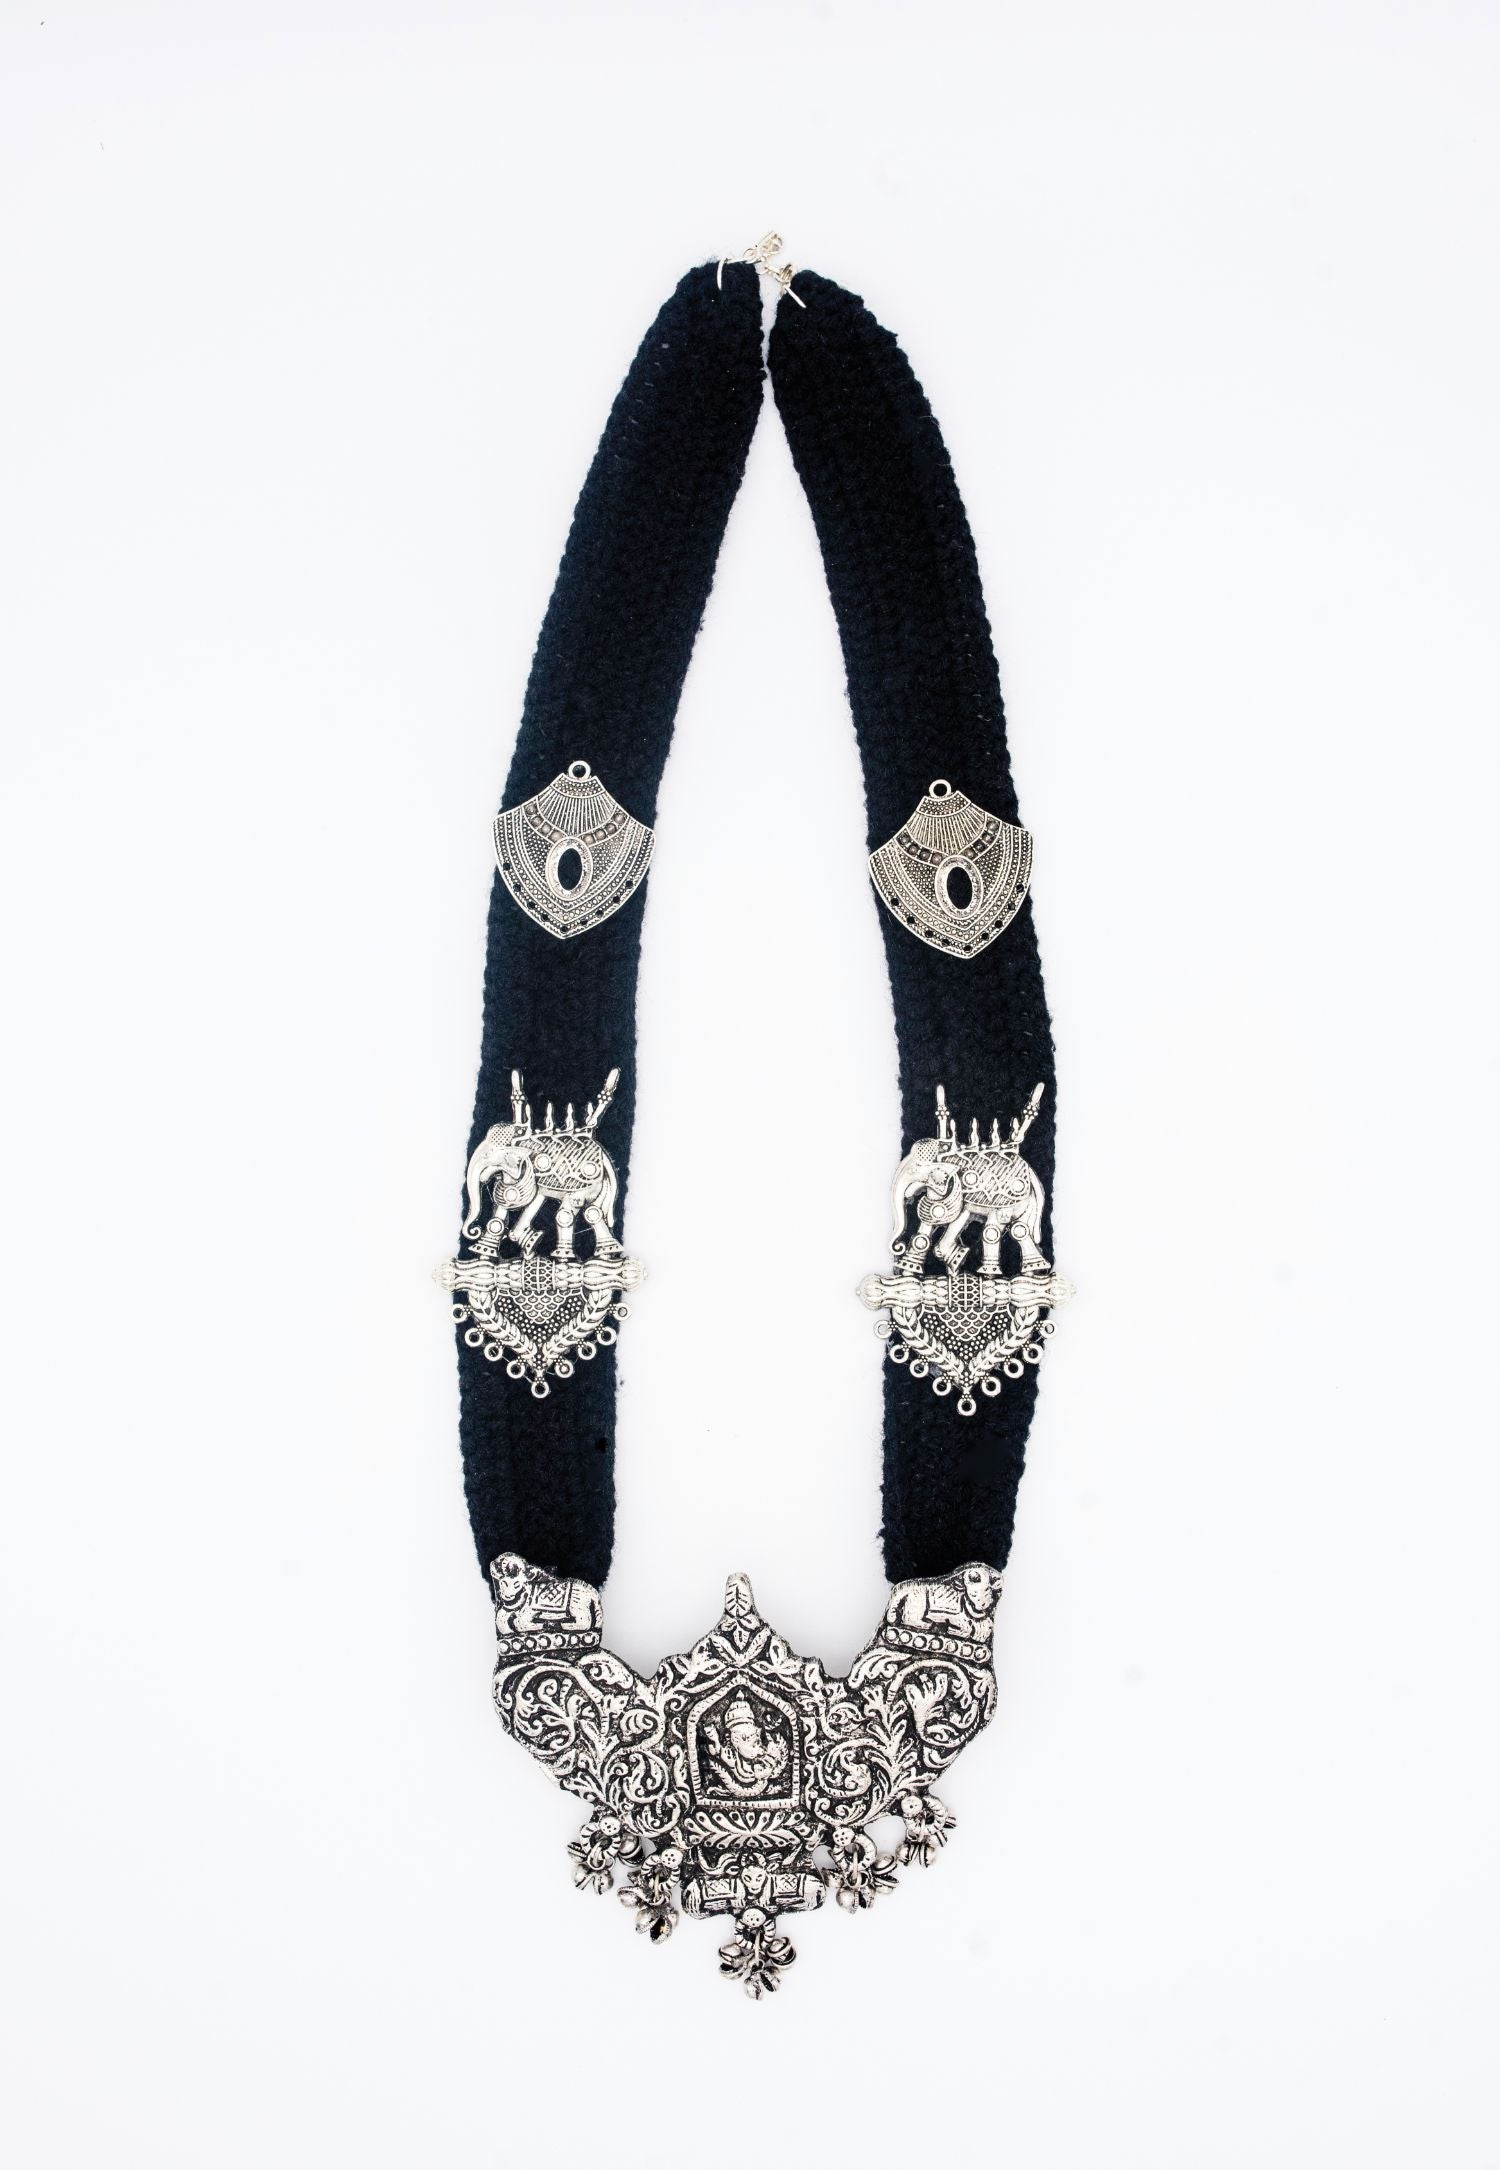 ETHNIC CARVED SILVER FINISH PENDANT ON BLACK THREAD NECKLACE